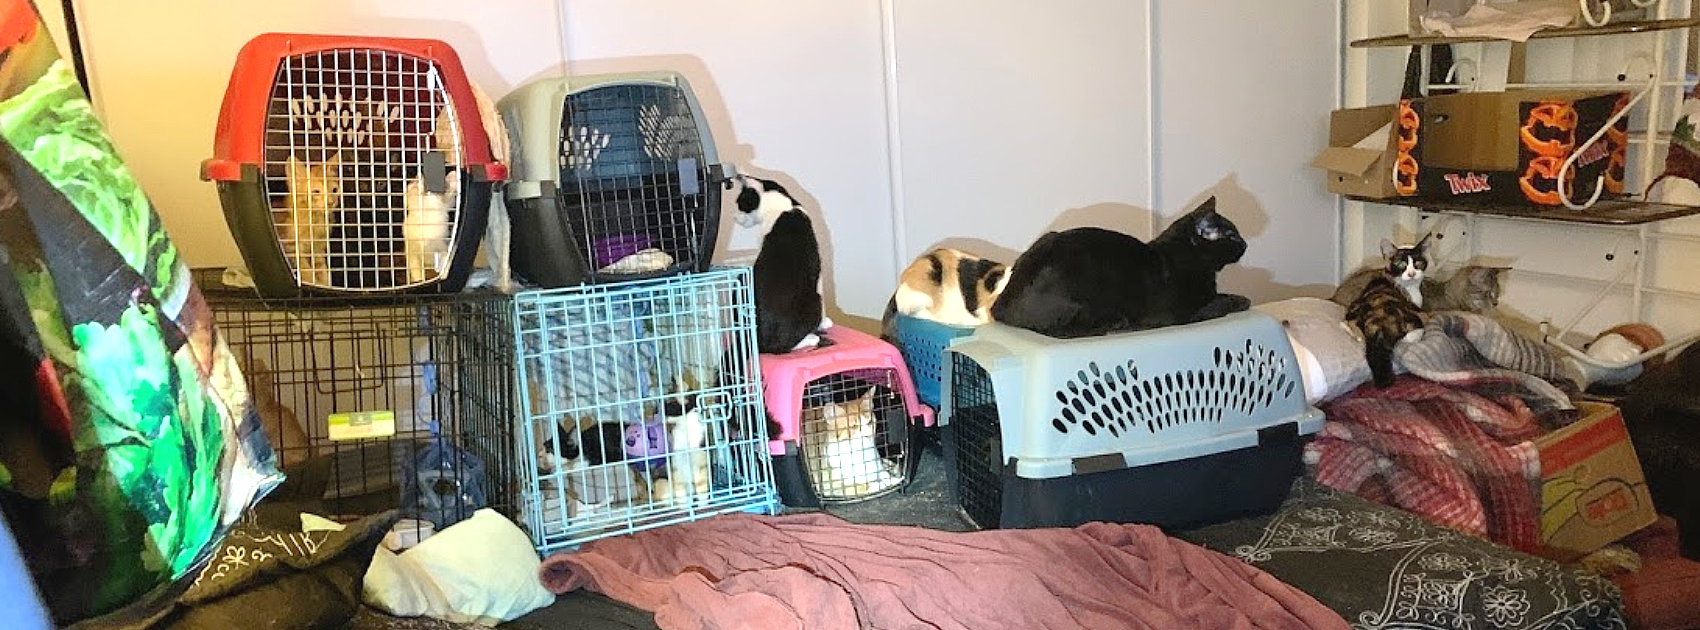 Image shows a bedroom with multiple cats, some of them locked in cages on top of the bed.